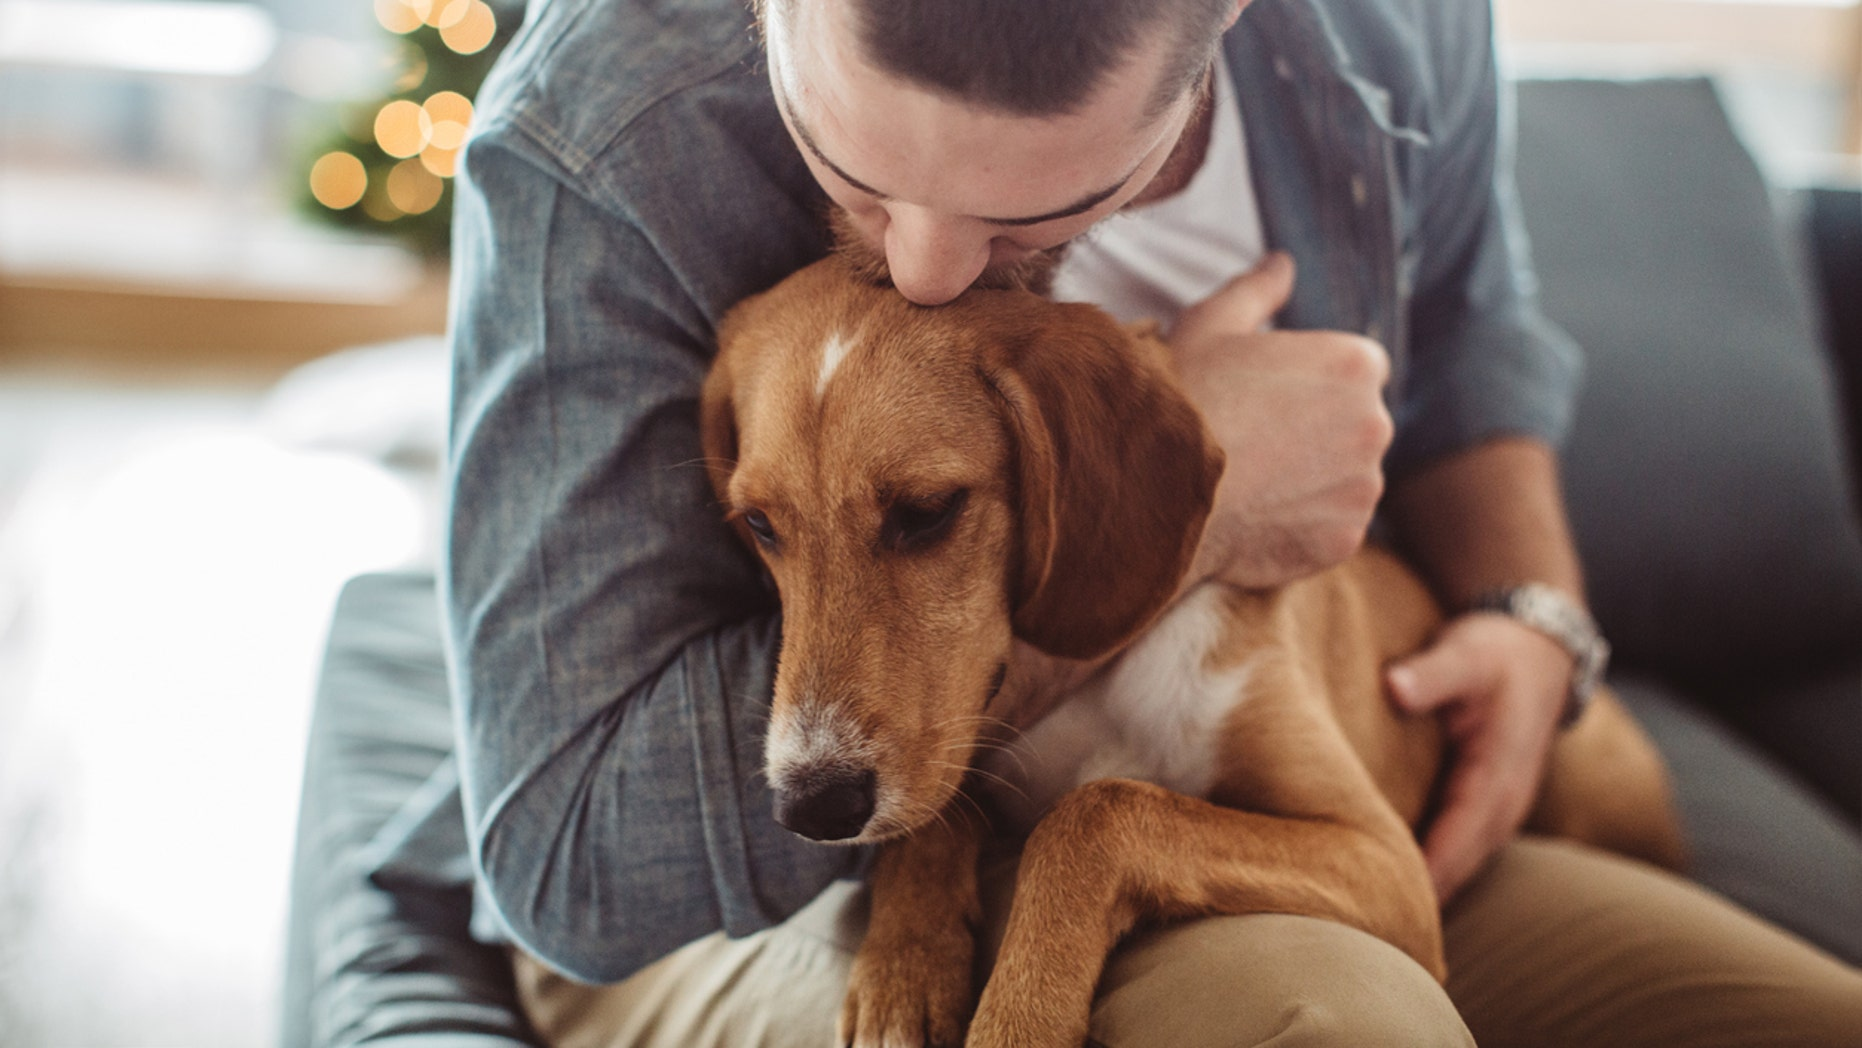 Two major studies claim that man has more empathy for dogs in dire circumstances than suffering people.